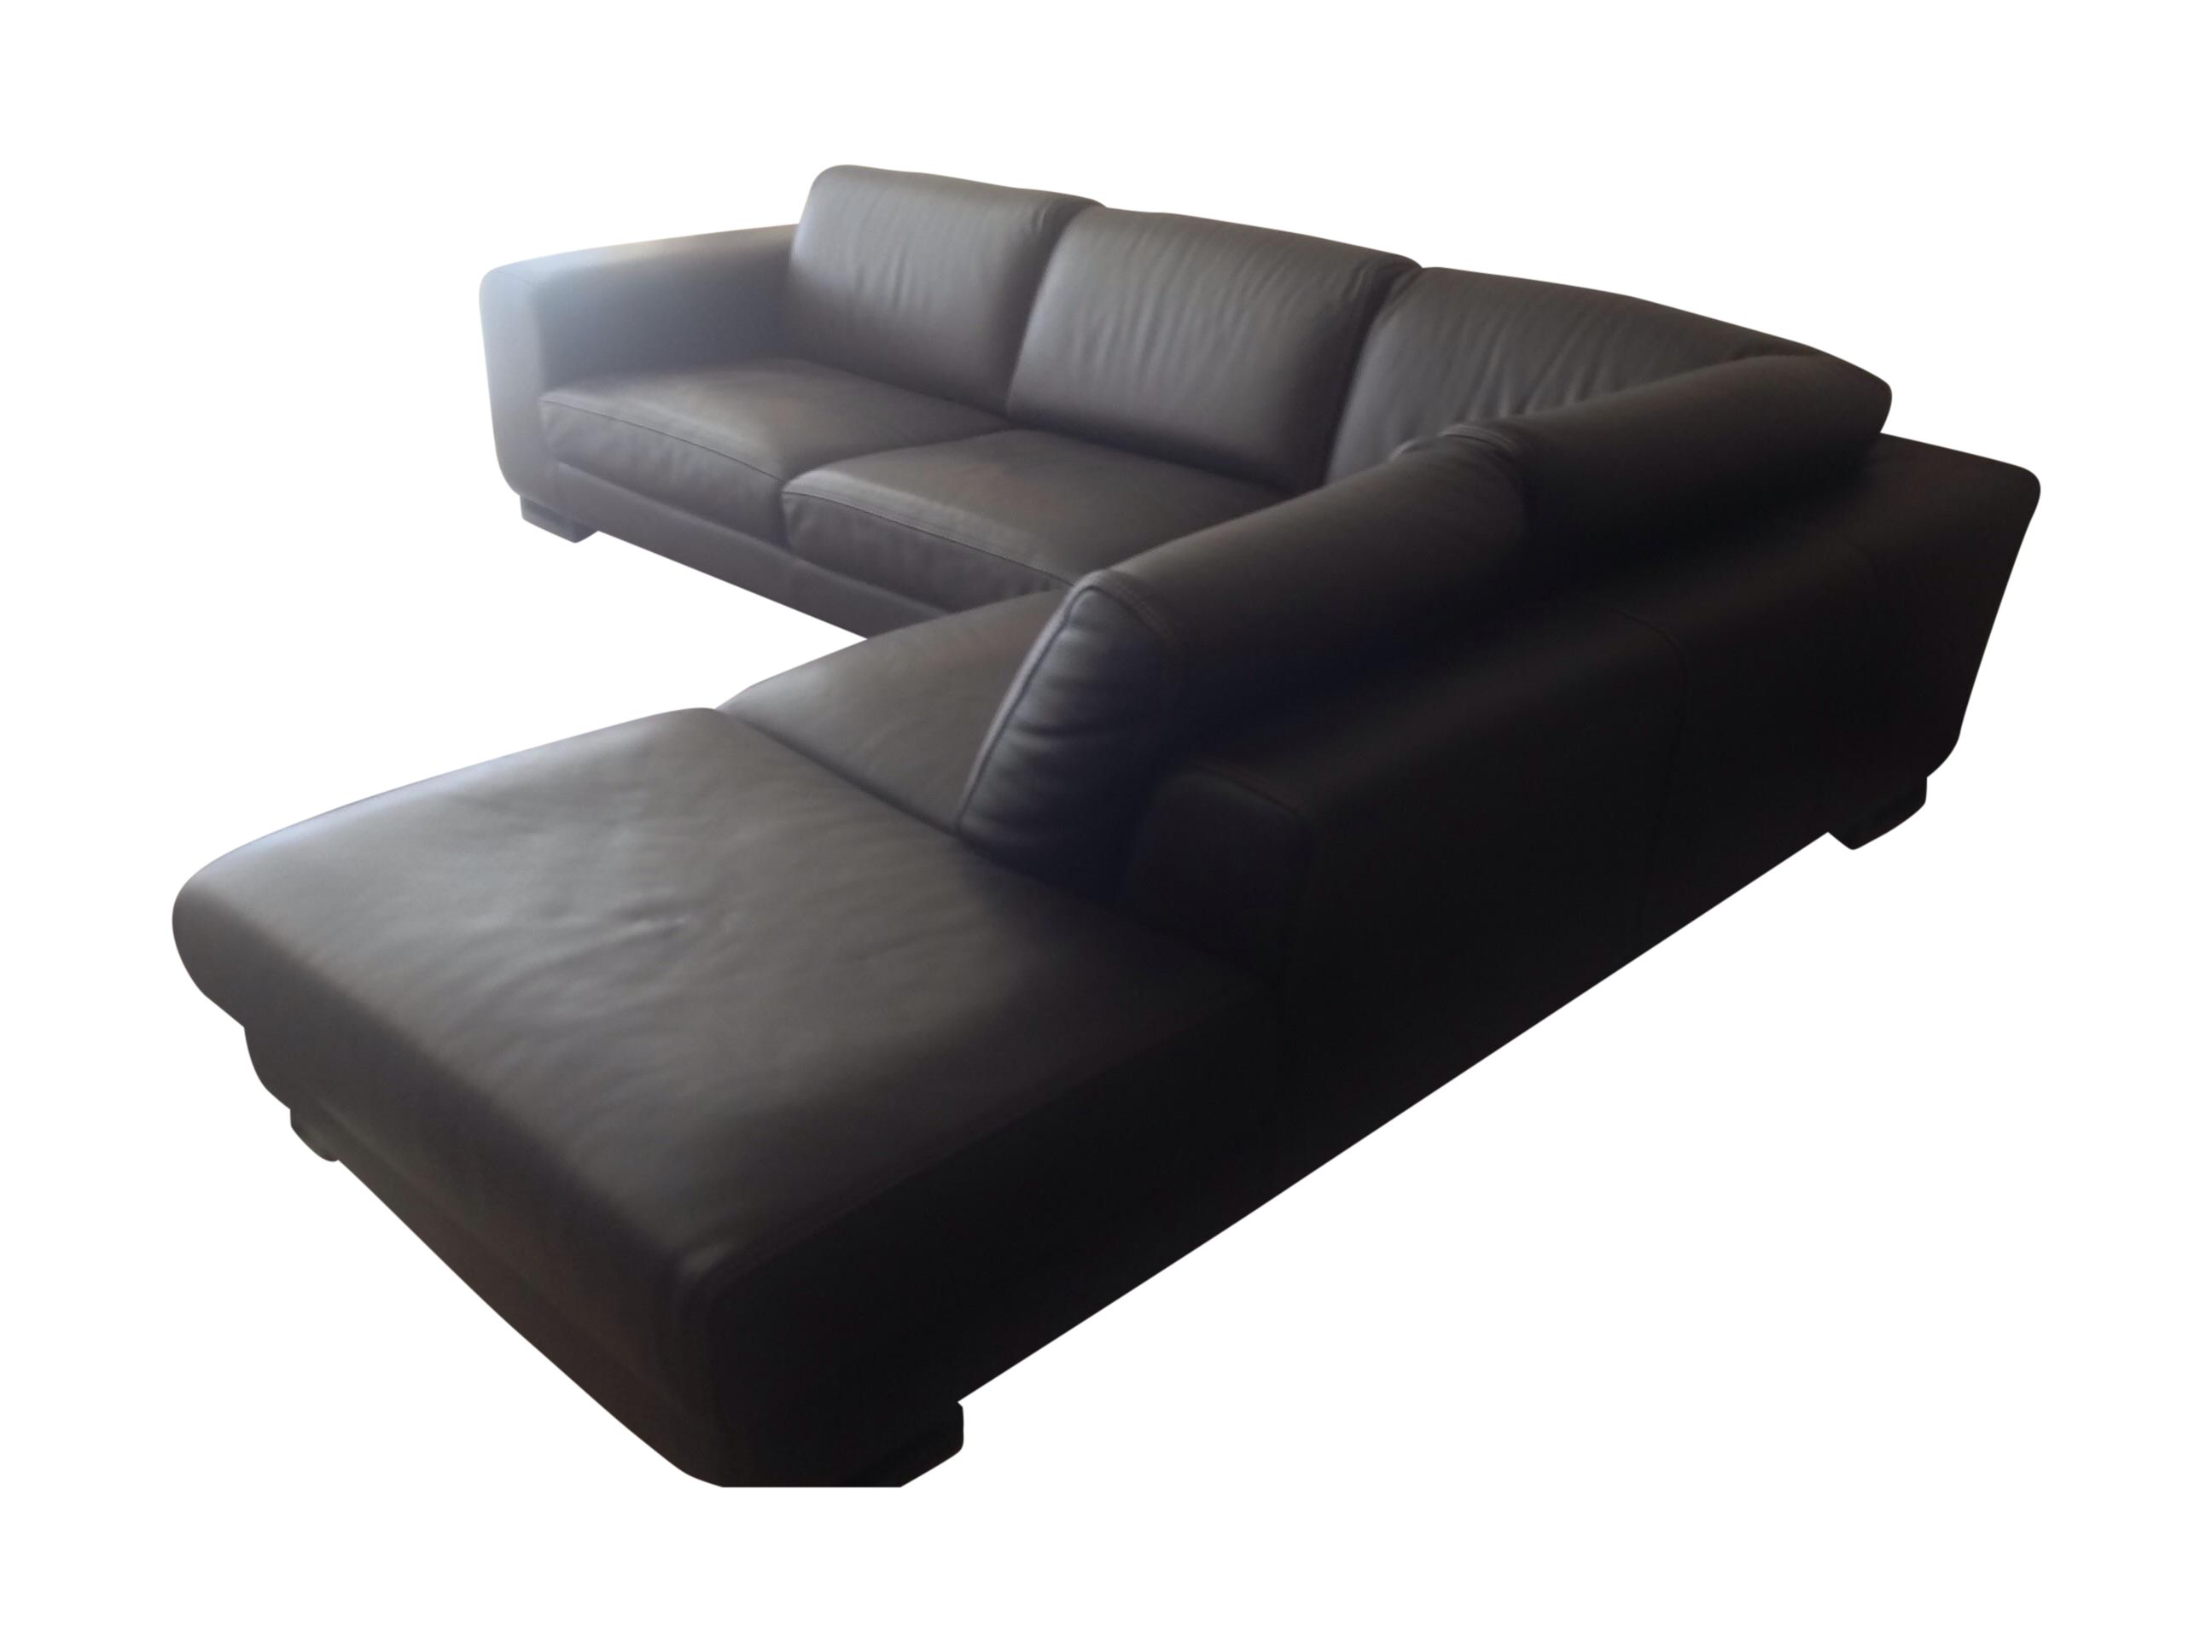 Cb2 flex sofa craigslist sofa menzilperde net for Cb2 leather sectional